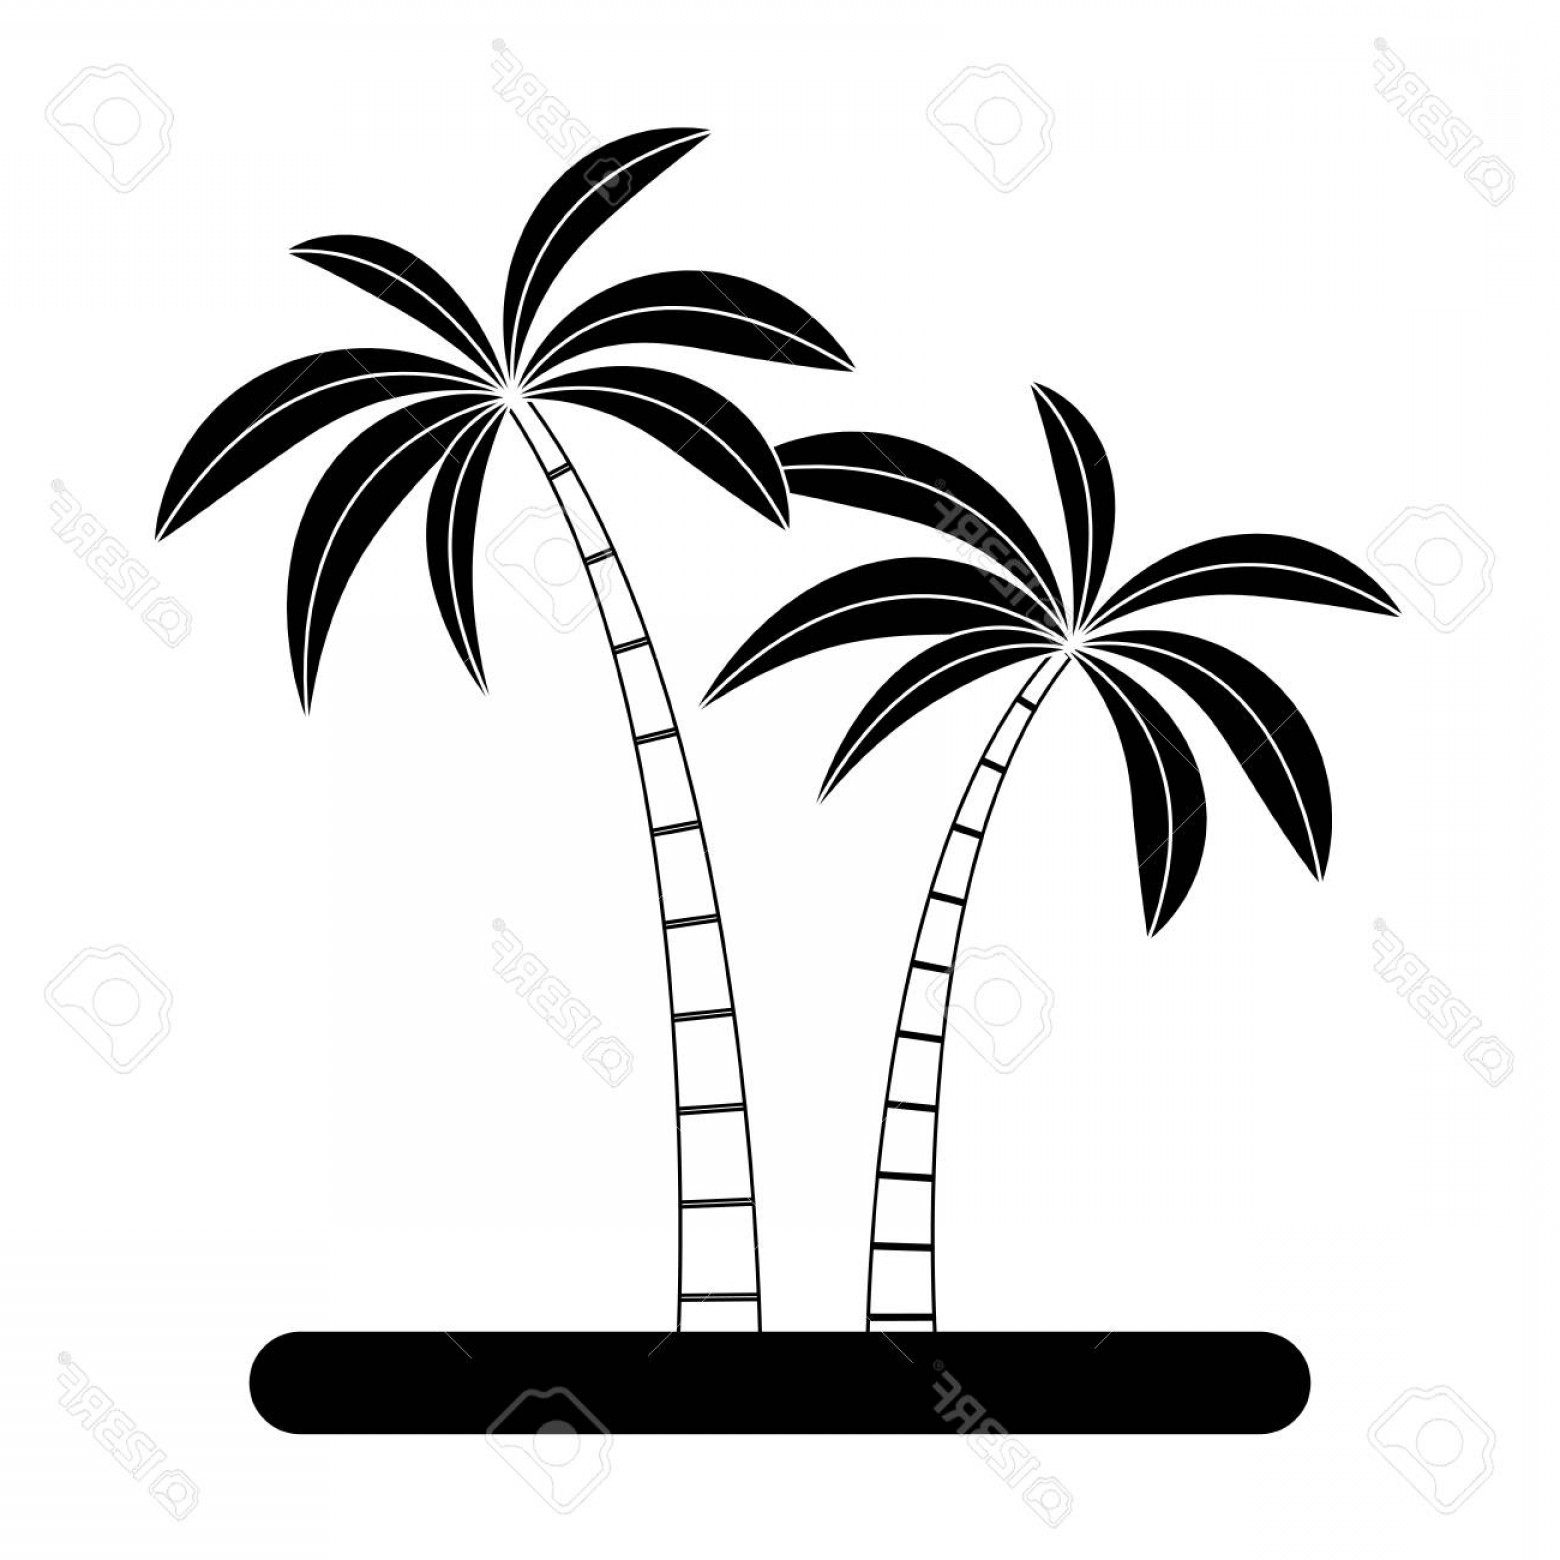 Contoon Free Black Vector Tree: Photostock Vector Tree Palms Cartoon Vector Illustration Graphic Design